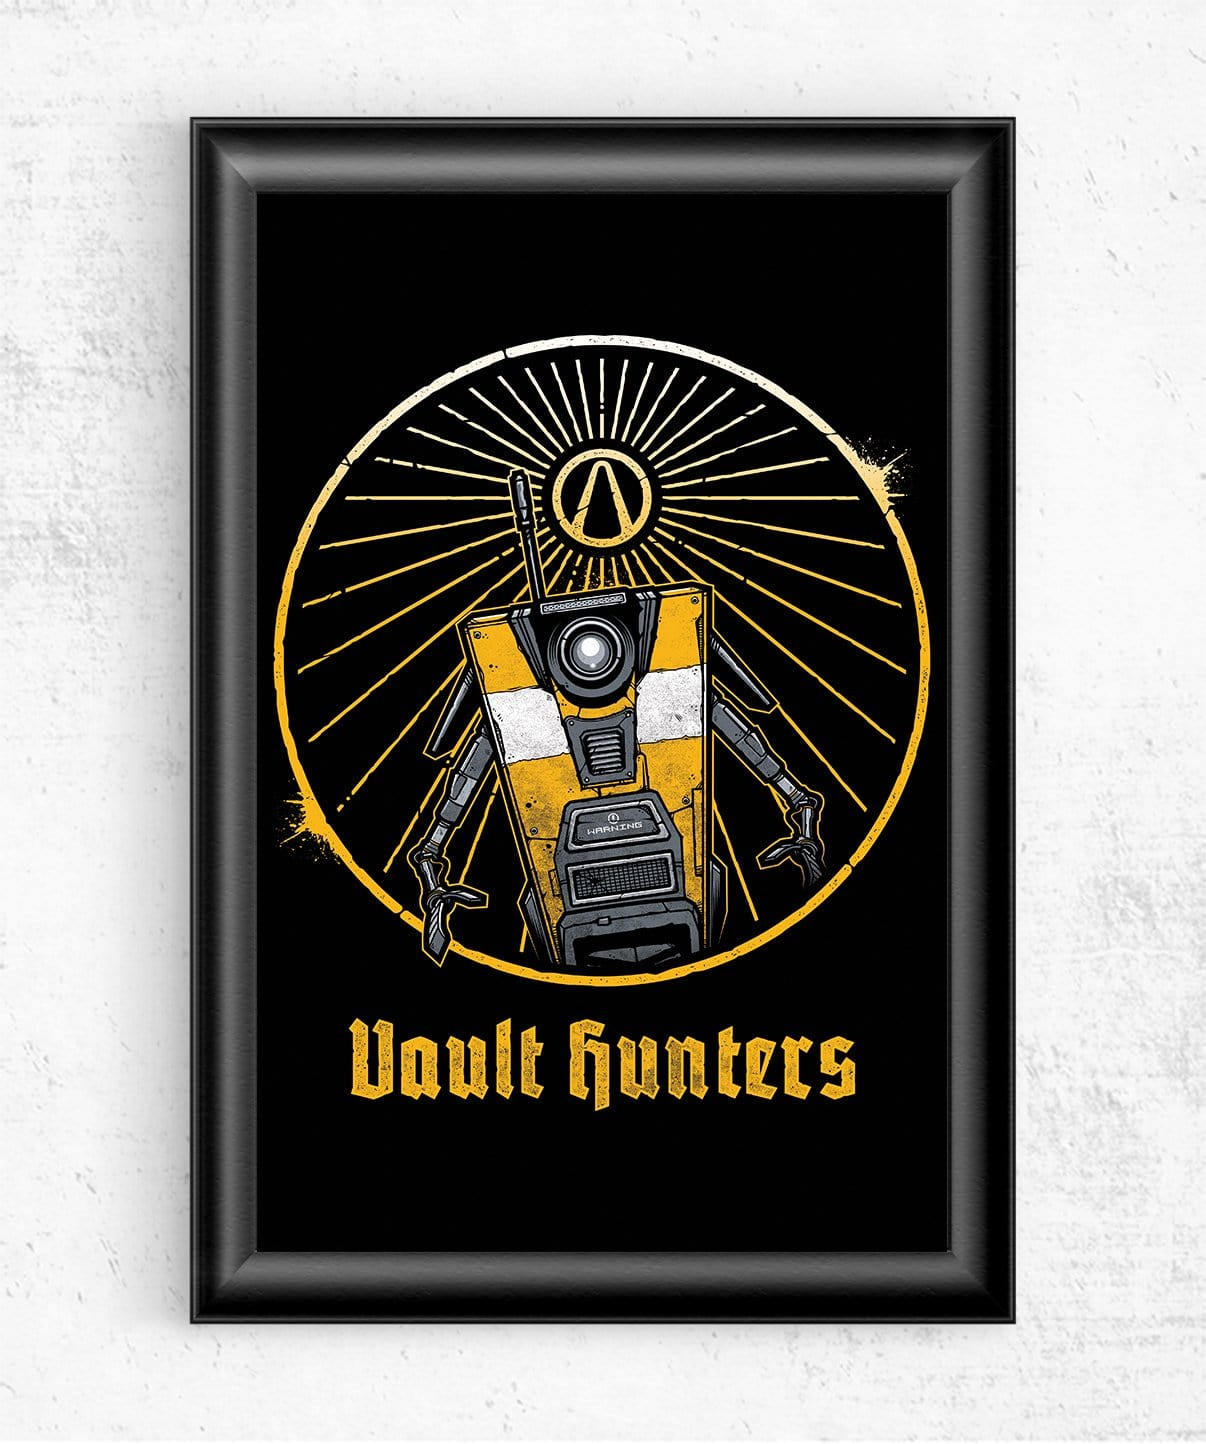 Vault Hunters Posters by StudioM6 - Pixel Empire